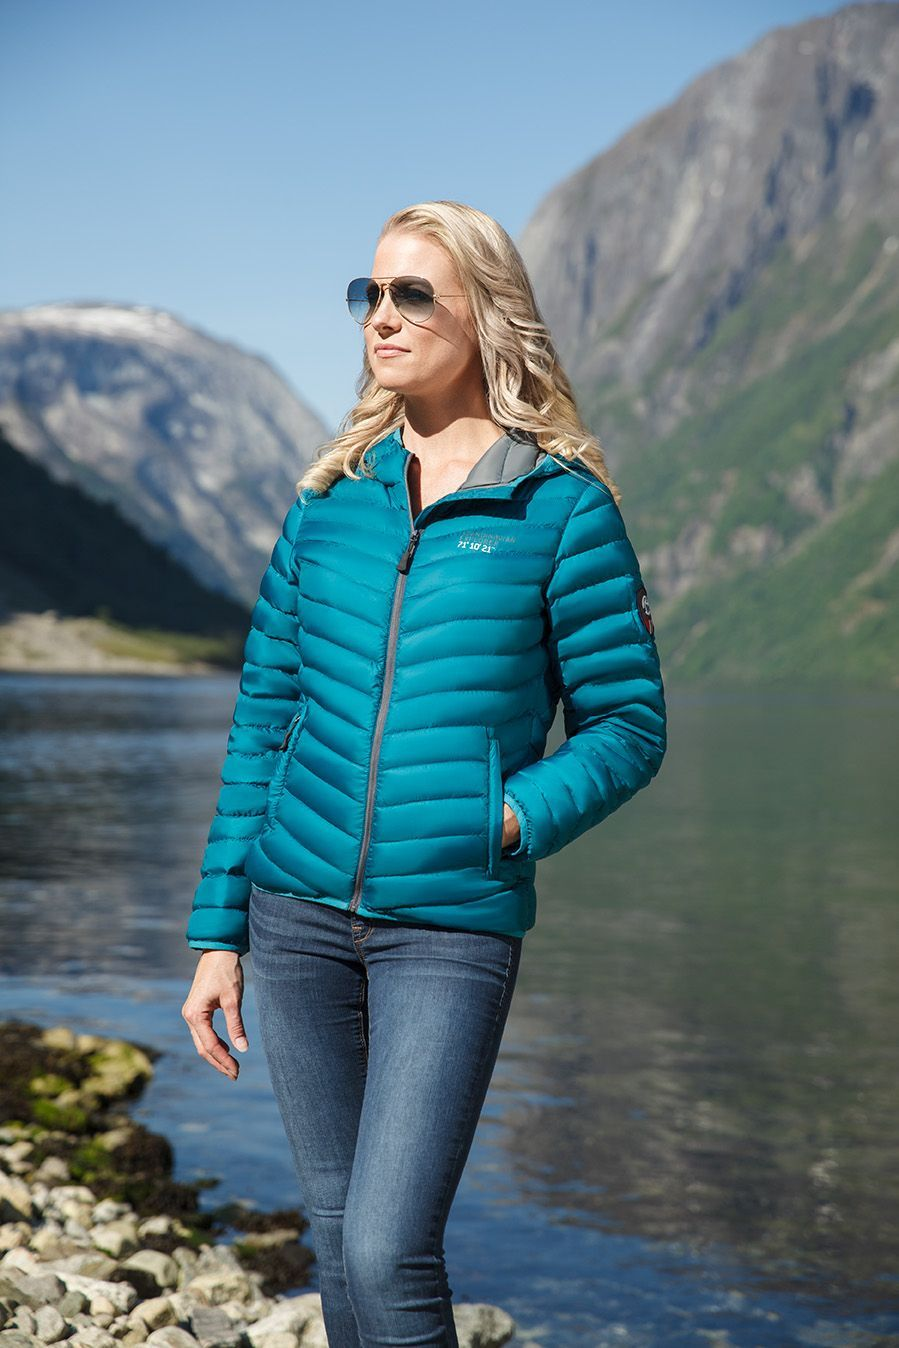 The Ocean Green Down Jacket By Scandinavian Explorer Is Available In Our Webshop Grab Yours Here Https Mallofnorway Com Women Jackets Coats Down Ultra Light